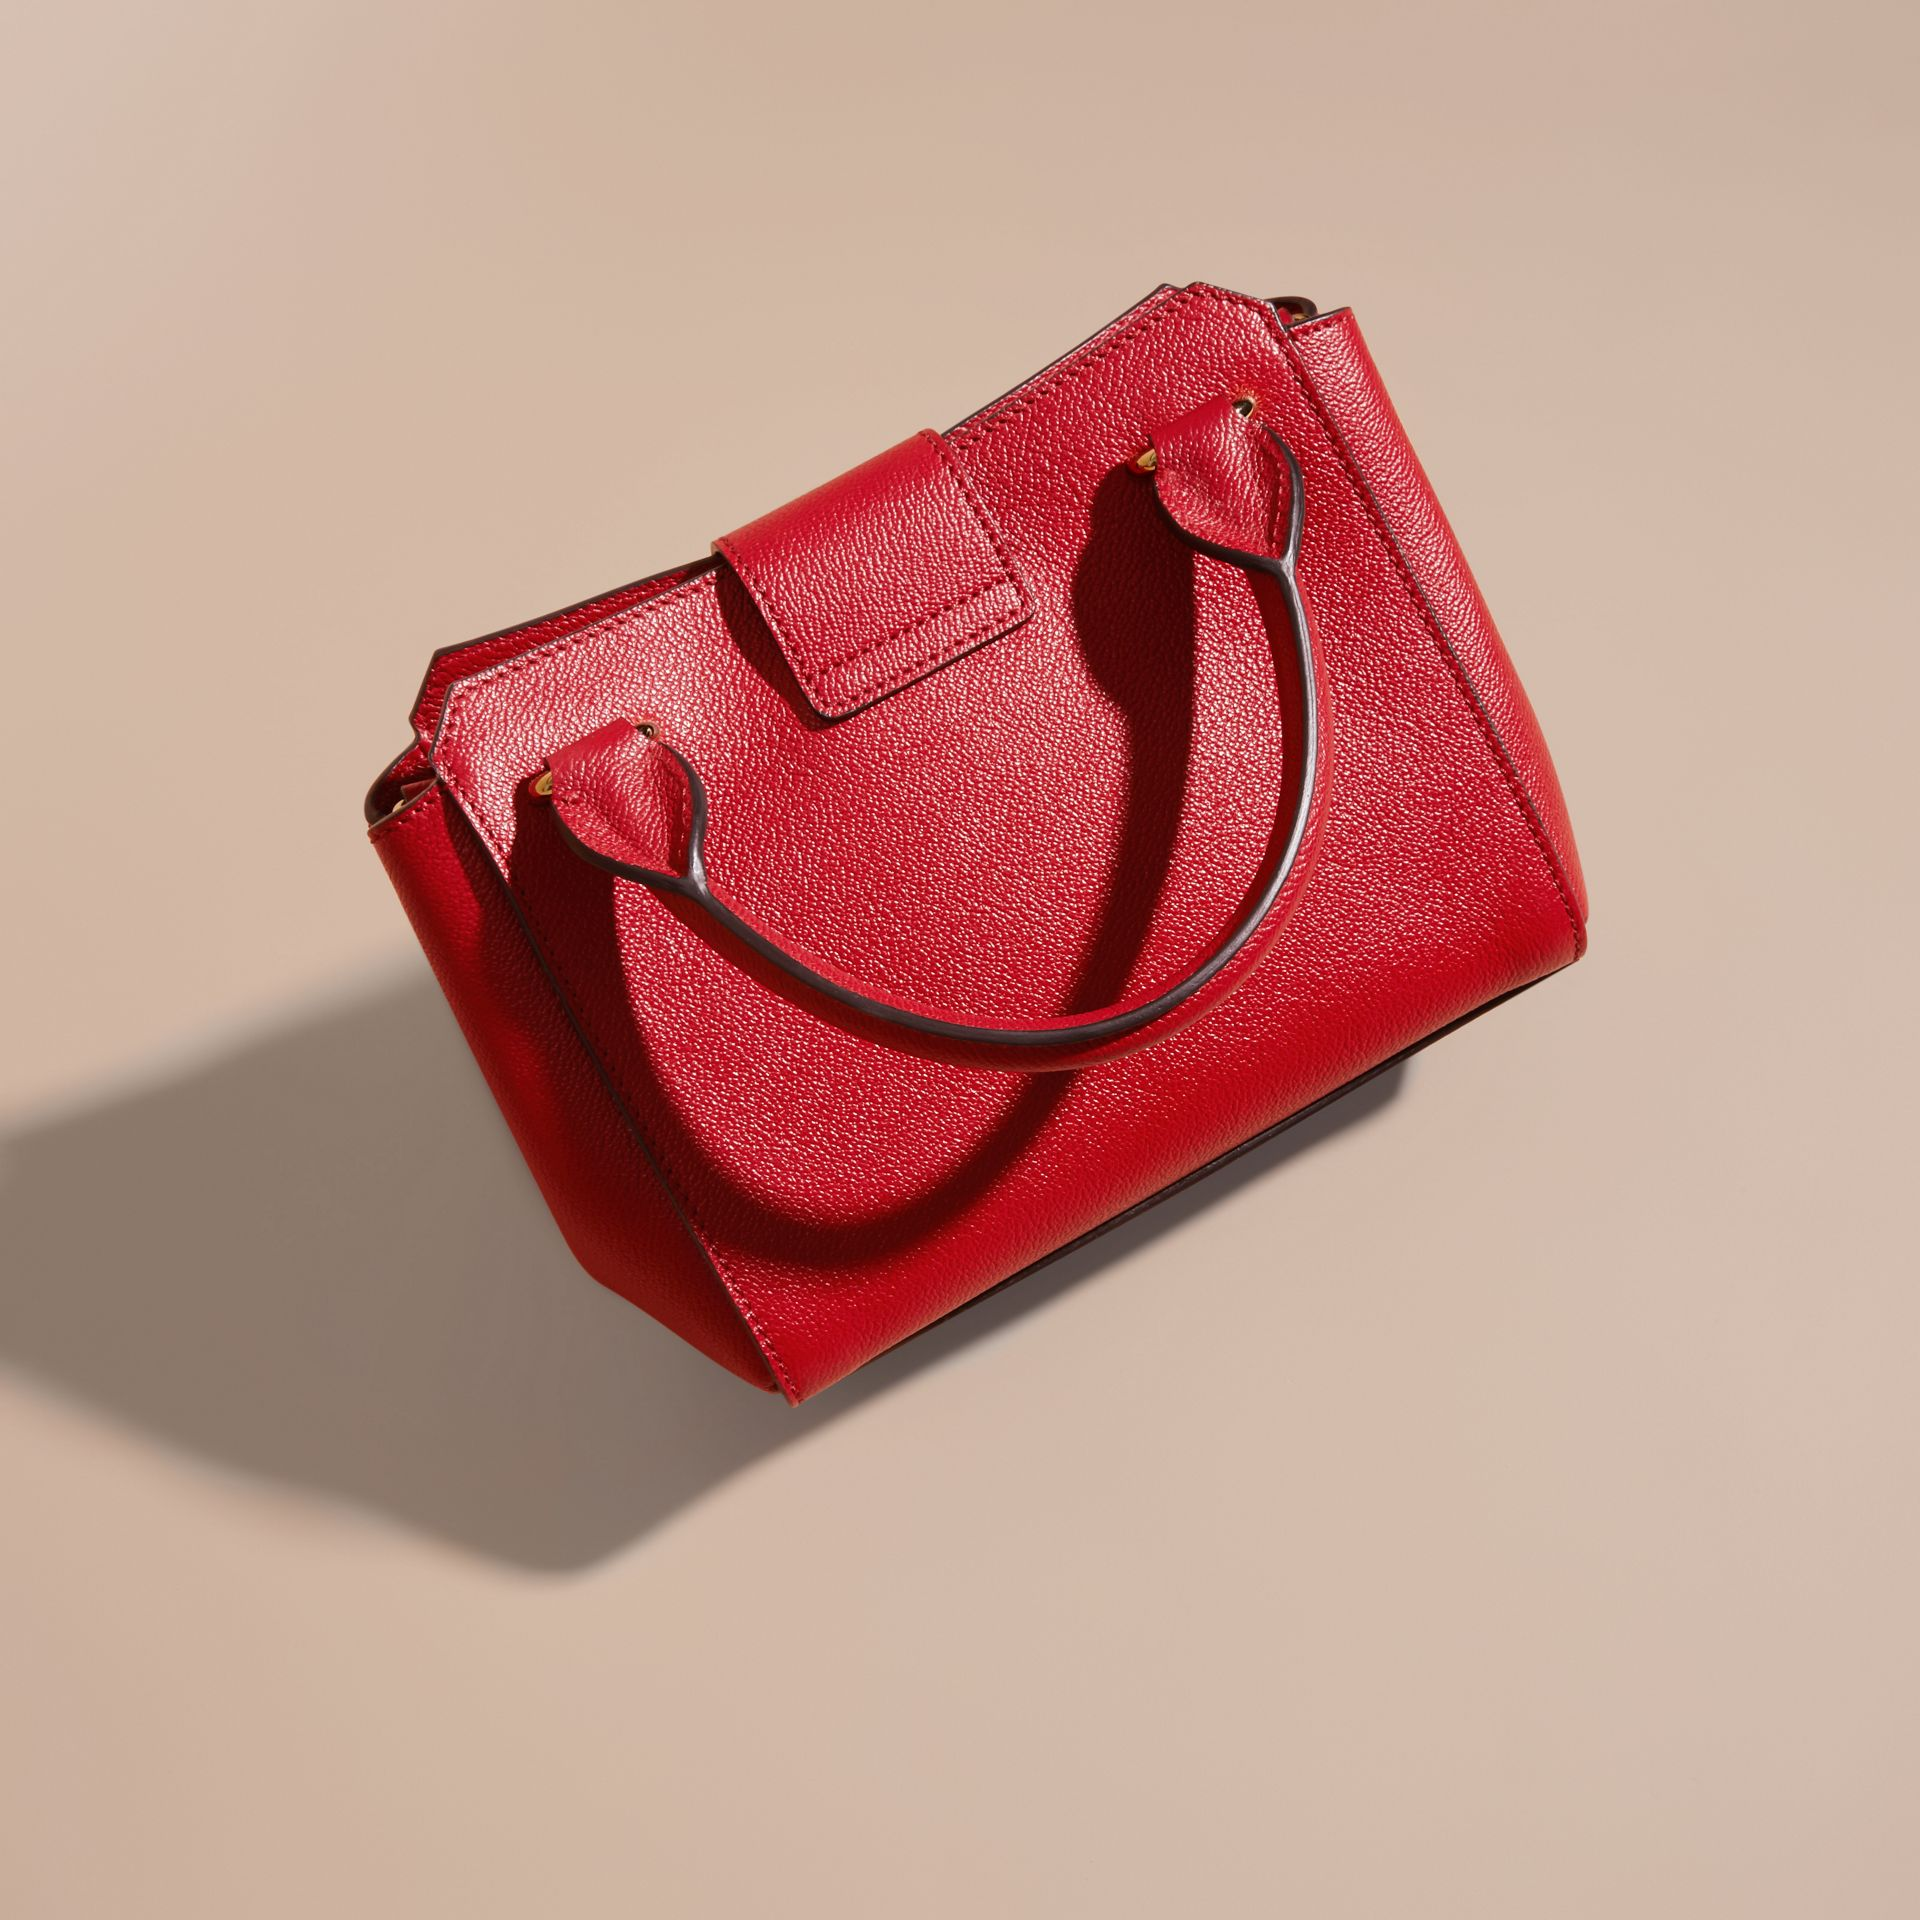 Parade red The Small Buckle Tote in Grainy Leather Parade Red - gallery image 4